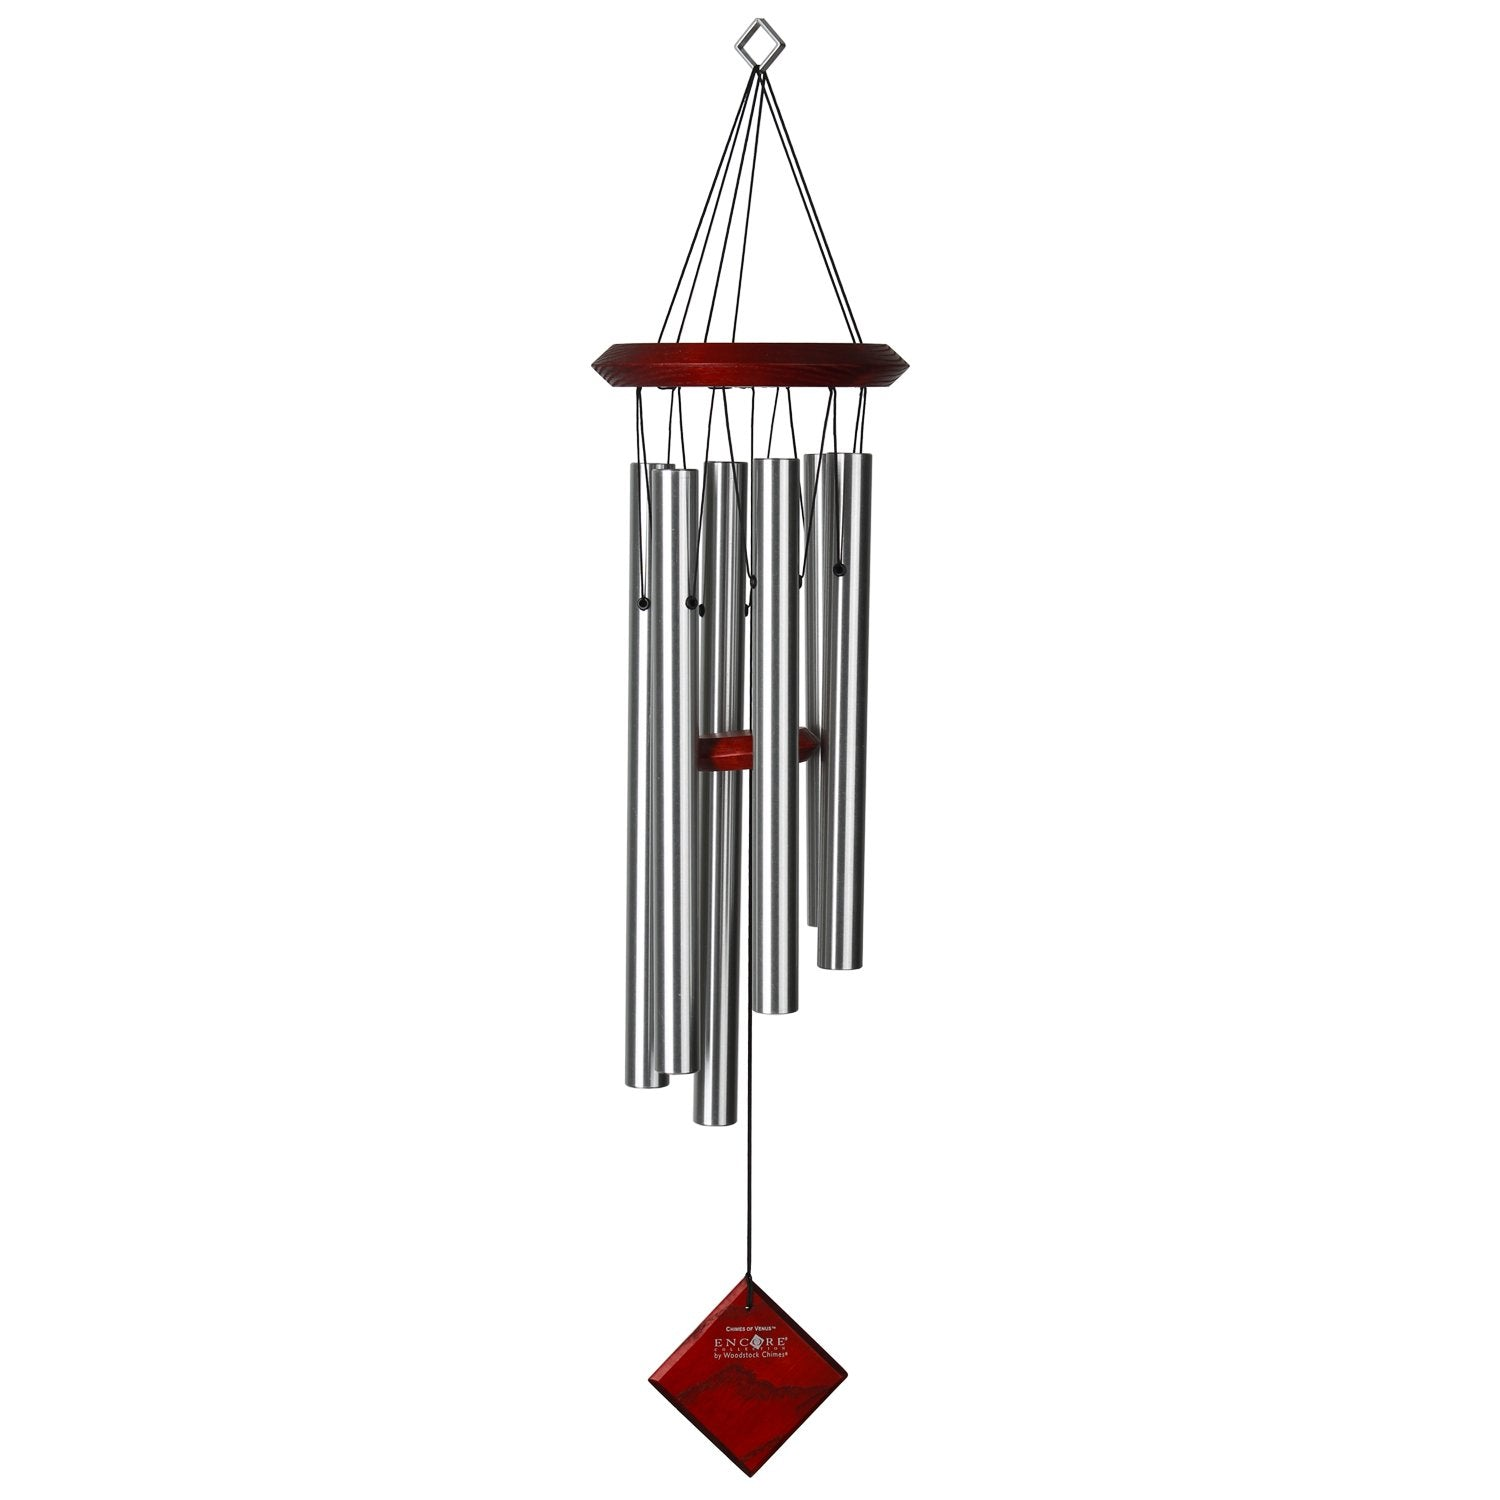 Encore Chimes of Pluto - Silver full product image